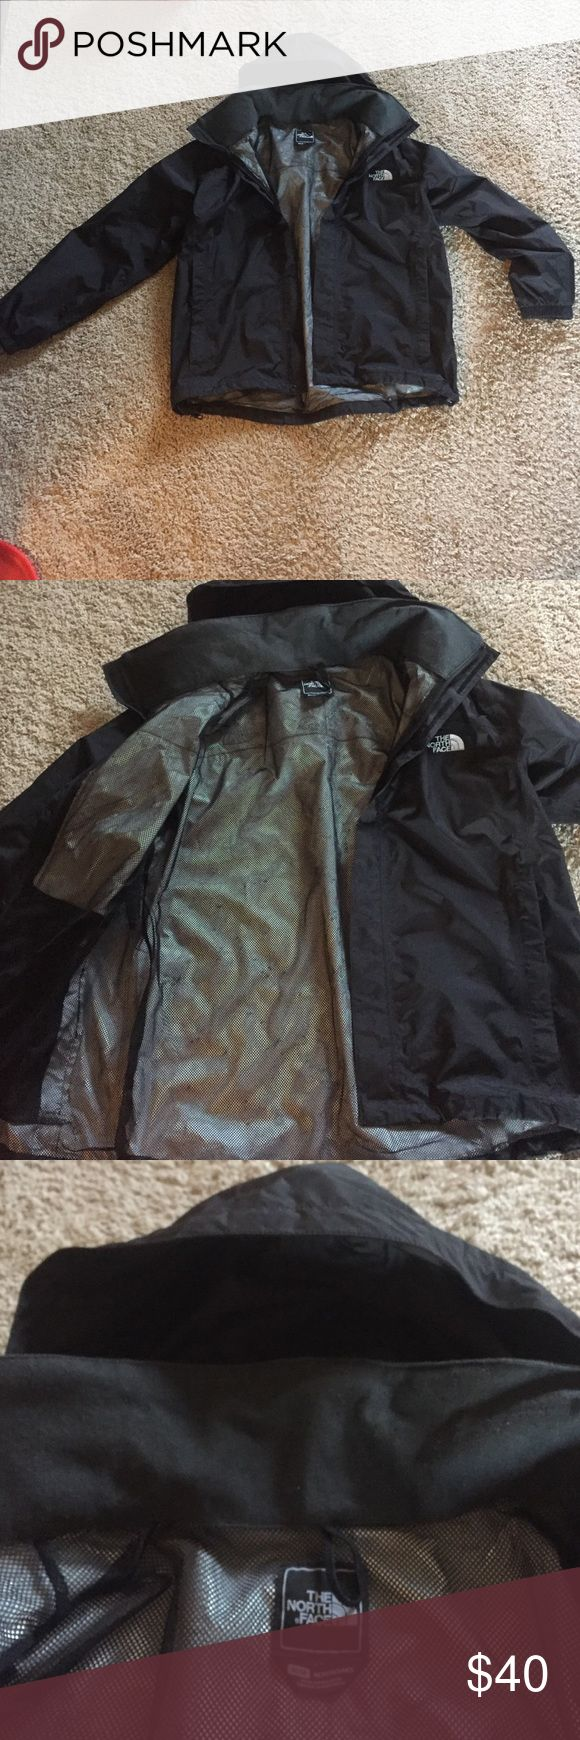 Men's Medium North Face Resolve Jacket Men's medium rain jacket from North Face. Jacket is in great condition and has no sign of wear. The jacket is too small for me, but it works great in the rain and wind! The North Face Jackets & Coats Raincoats